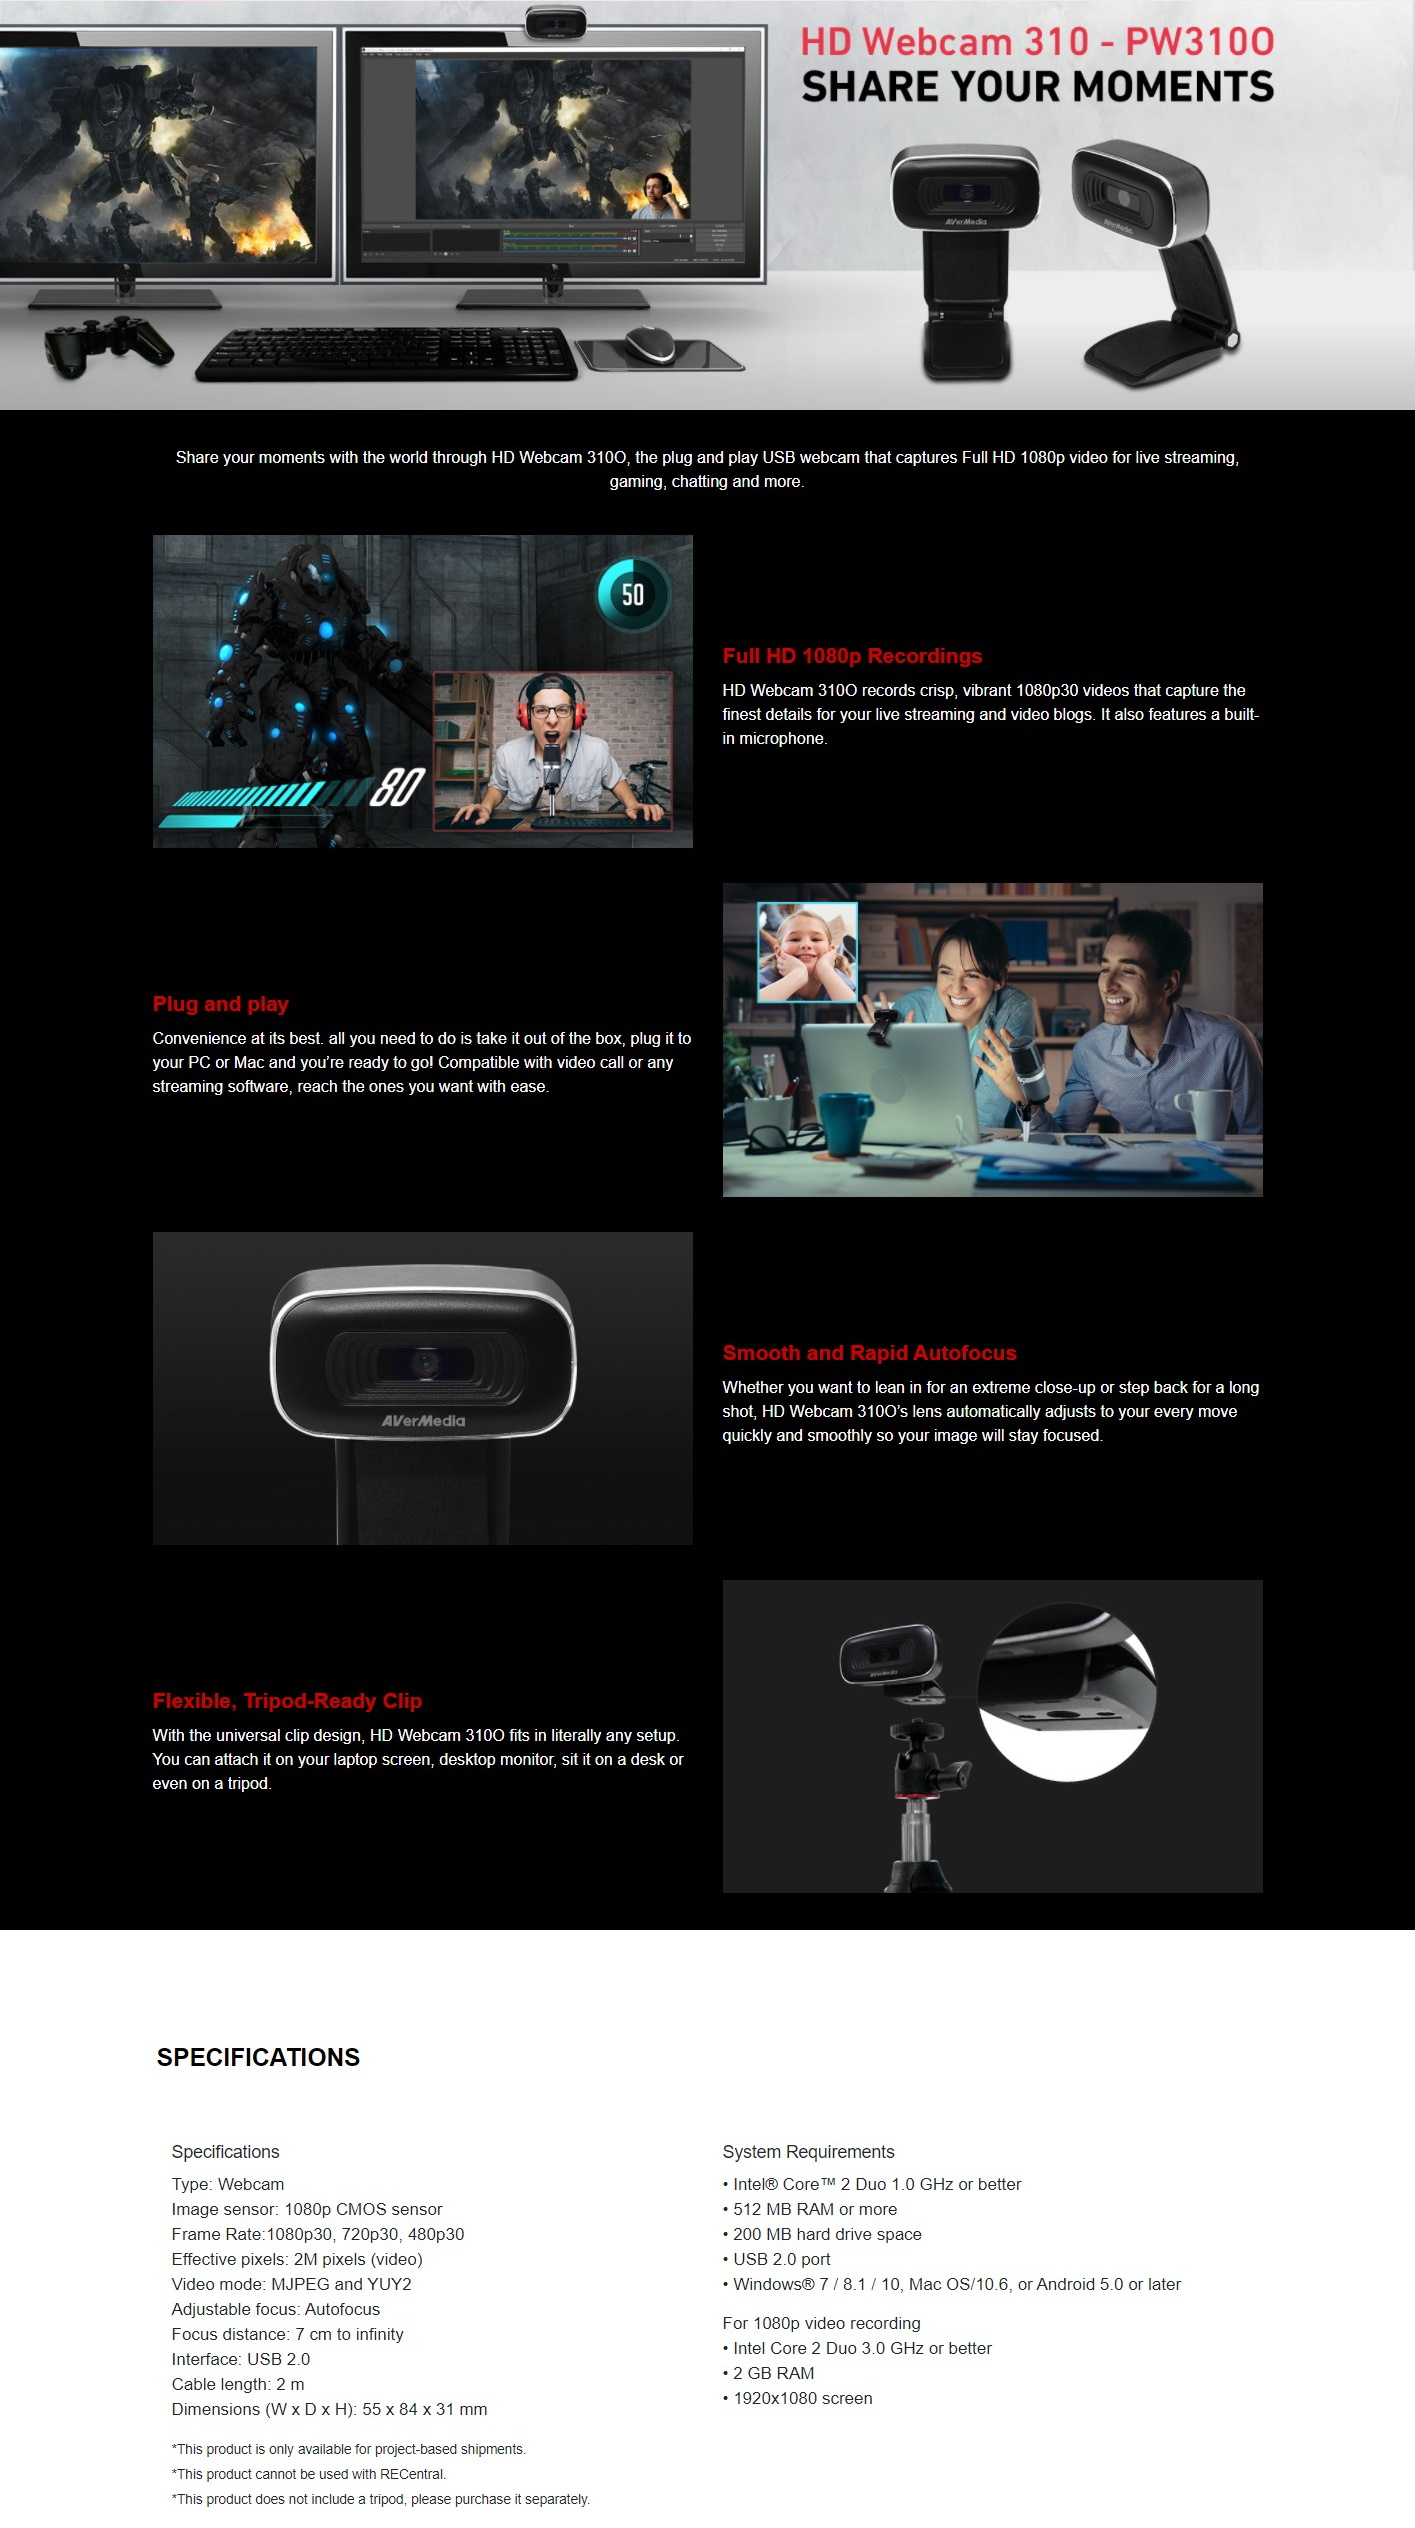 A large marketing image providing additional information about the product AVerMedia PW310 1080p Autofocus Webcam - Additional alt info not provided